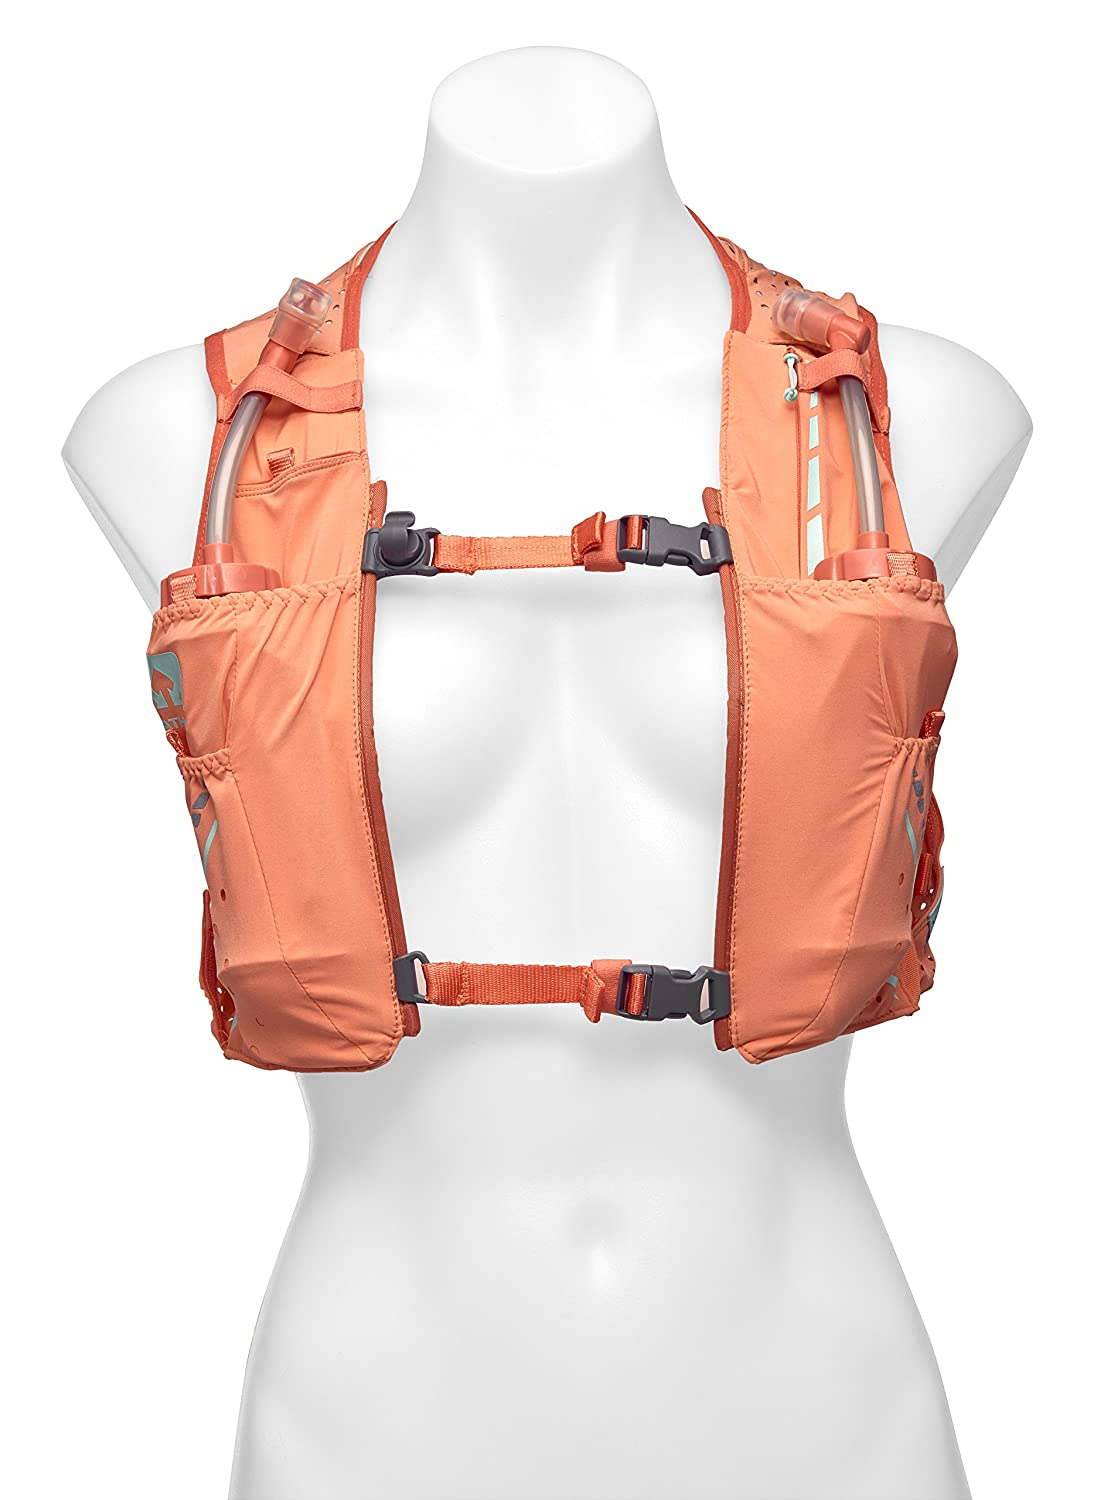 Nathan VaporHowe Hydration Pack, Running Vest, Includes Two 12oz Flasks with Extended Straws, Compatible with 1.5L Hydration Bladder Reservoir, Women's Women's SHOCK DOCTOR NATHAN NS4537-0253-32-P